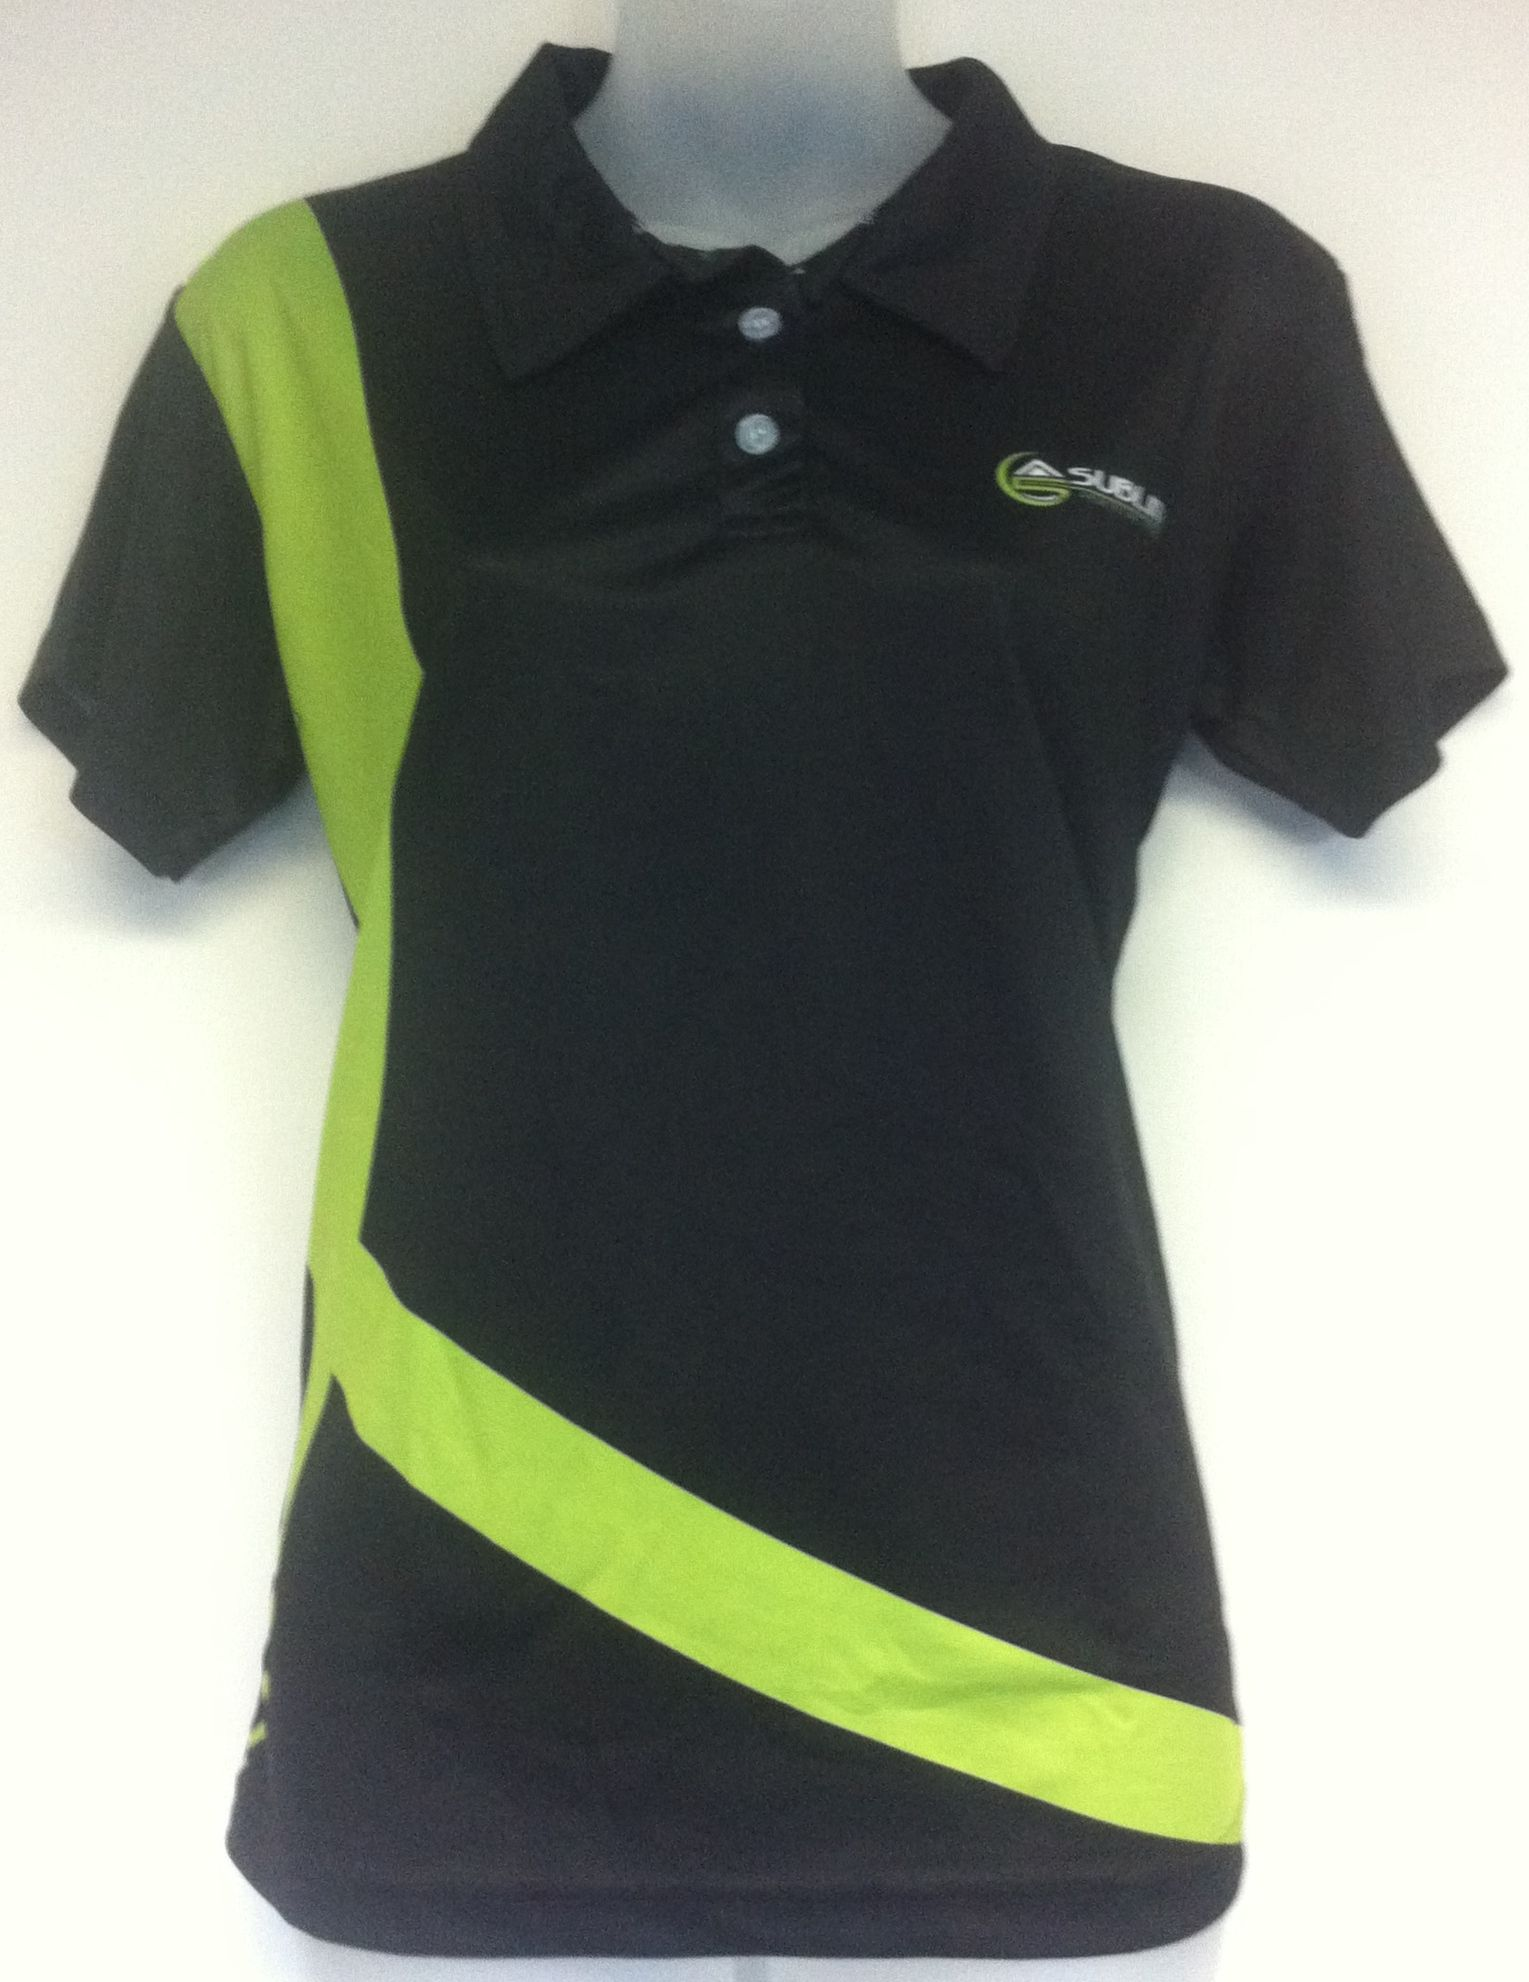 Design t shirt netball - This Polo Shirt Was Created For The Sublime Interiors Team To Design Your Own Business